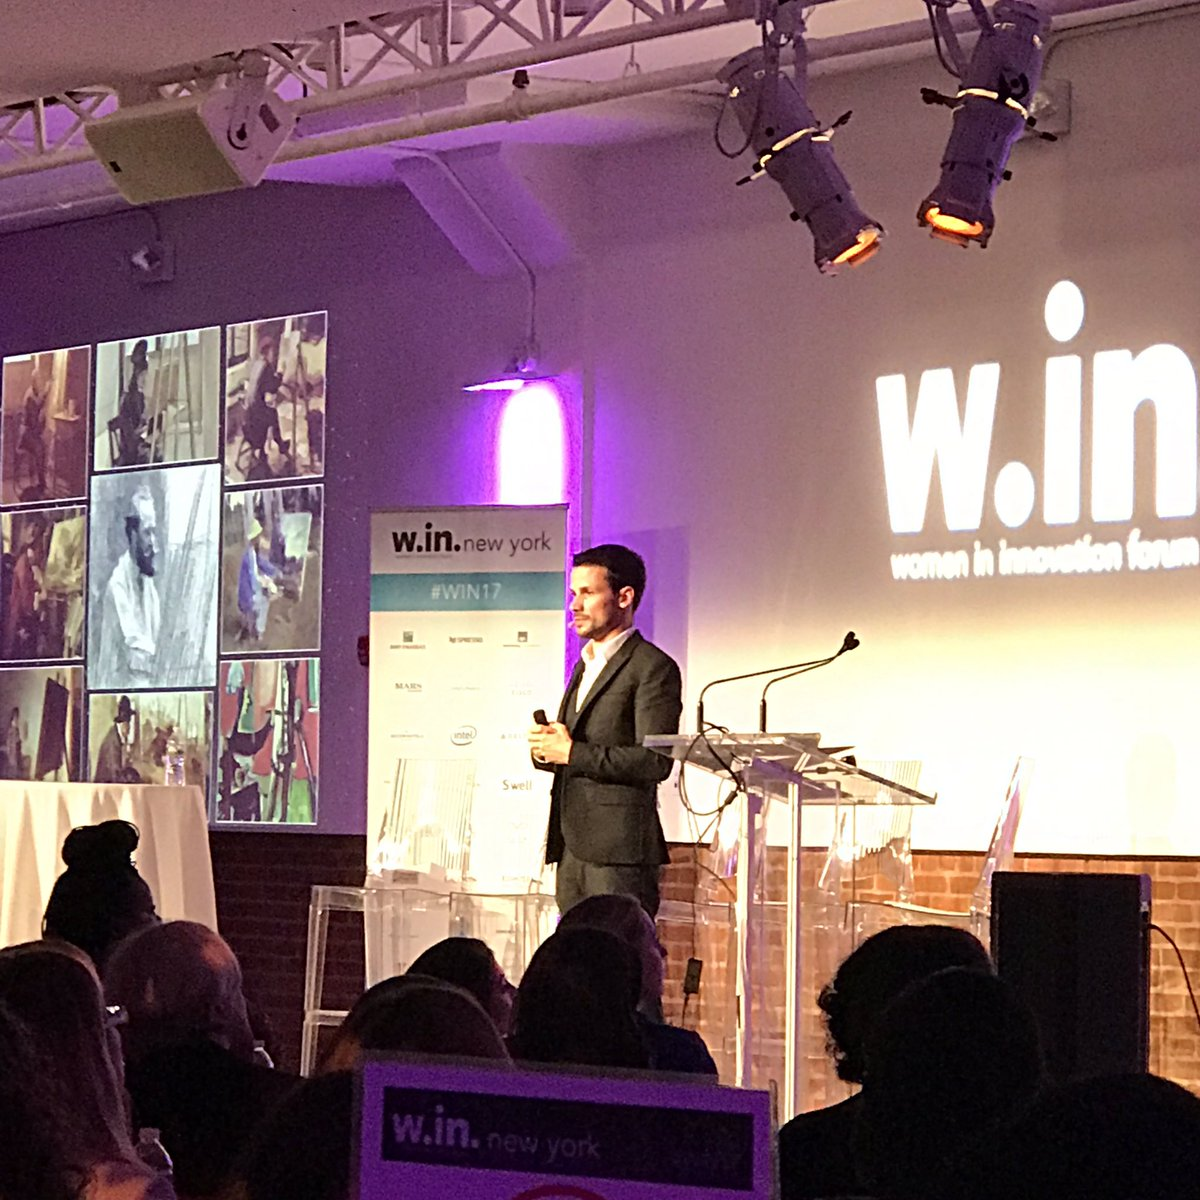 Thanks @greg_jeanmonod for your #vision on #art and #innovation #thinkOutOfTheBox ! @WinforumNY #ILoveIt <br>http://pic.twitter.com/cHZBysicAi